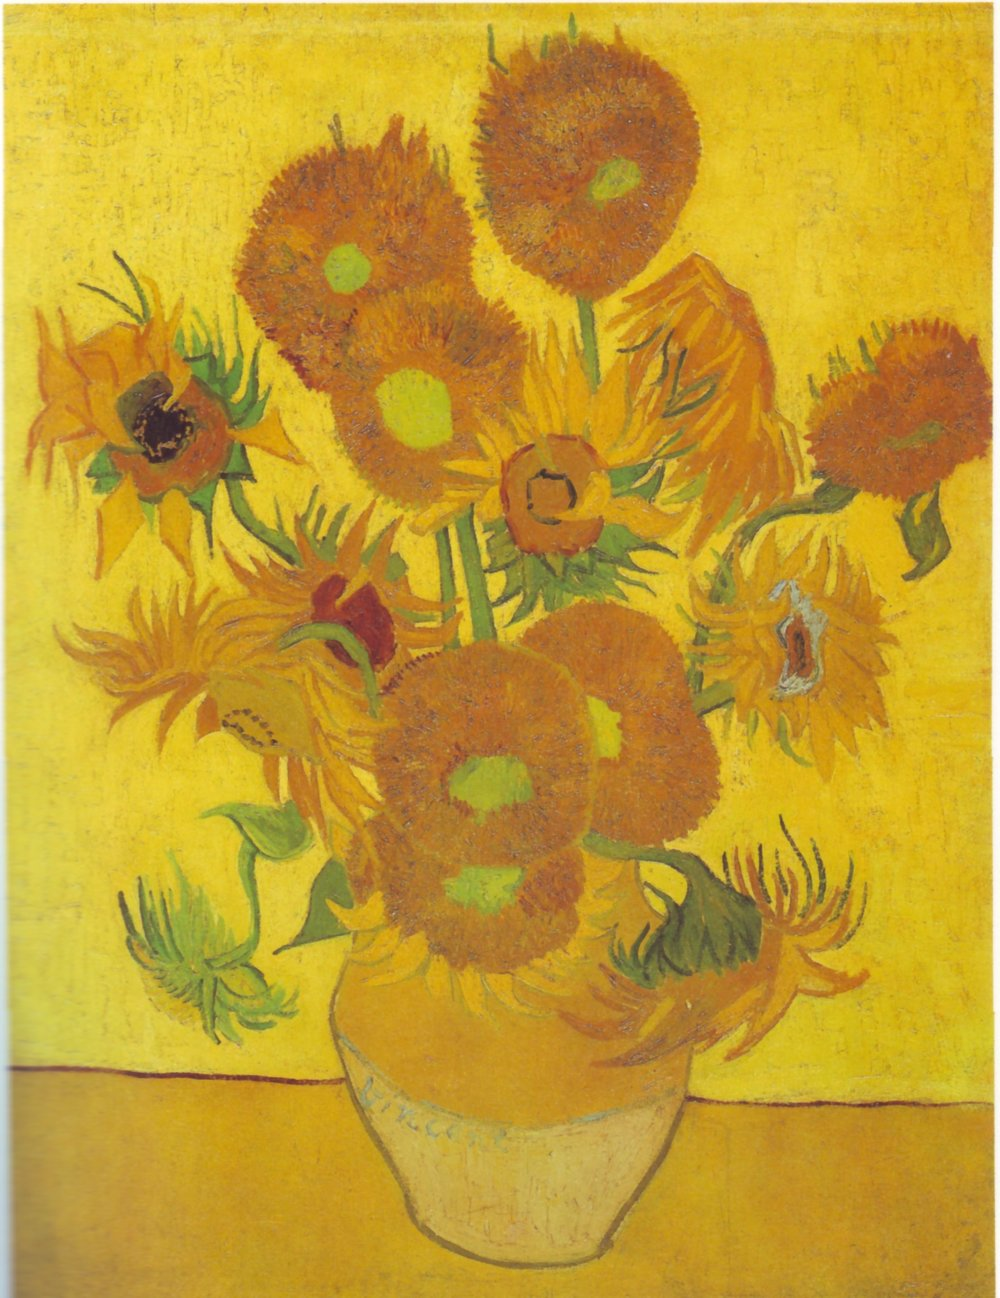 Vincent Van Gogh, Sunflowers Arles, 1888, oil on canvas, 92.5 x 73 cm, Vincent van Gogh Foundation / National Museum Vincent van Gogh, Amsterdam